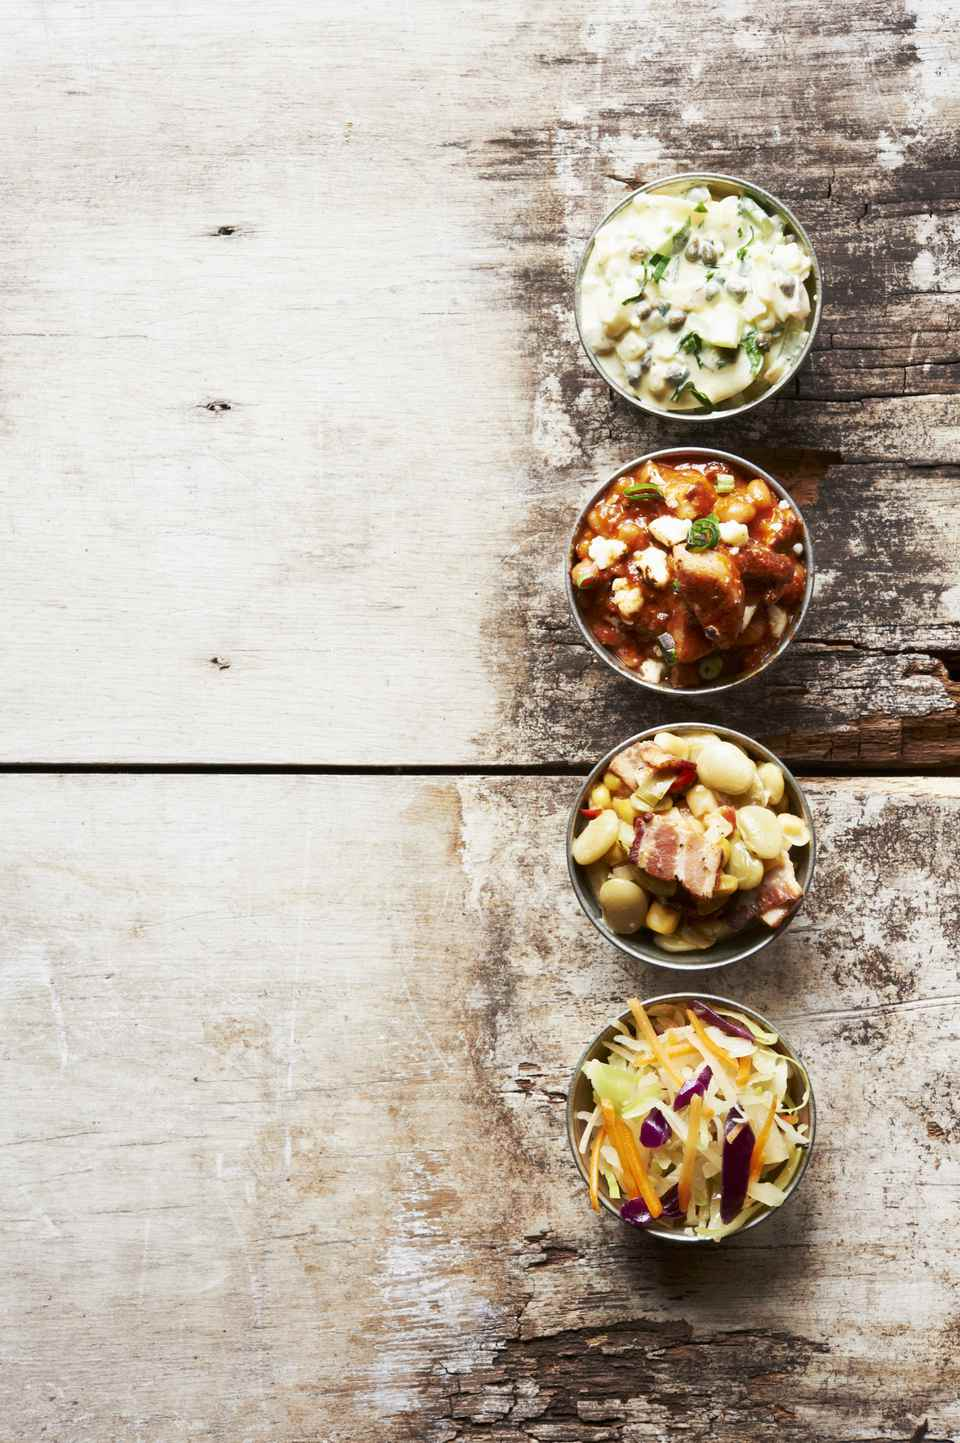 Barbecue Side Dishes in Small Bowls on a Wooden Table, Pork and Beans, Potato Salad, Cole Slaw and Succotash